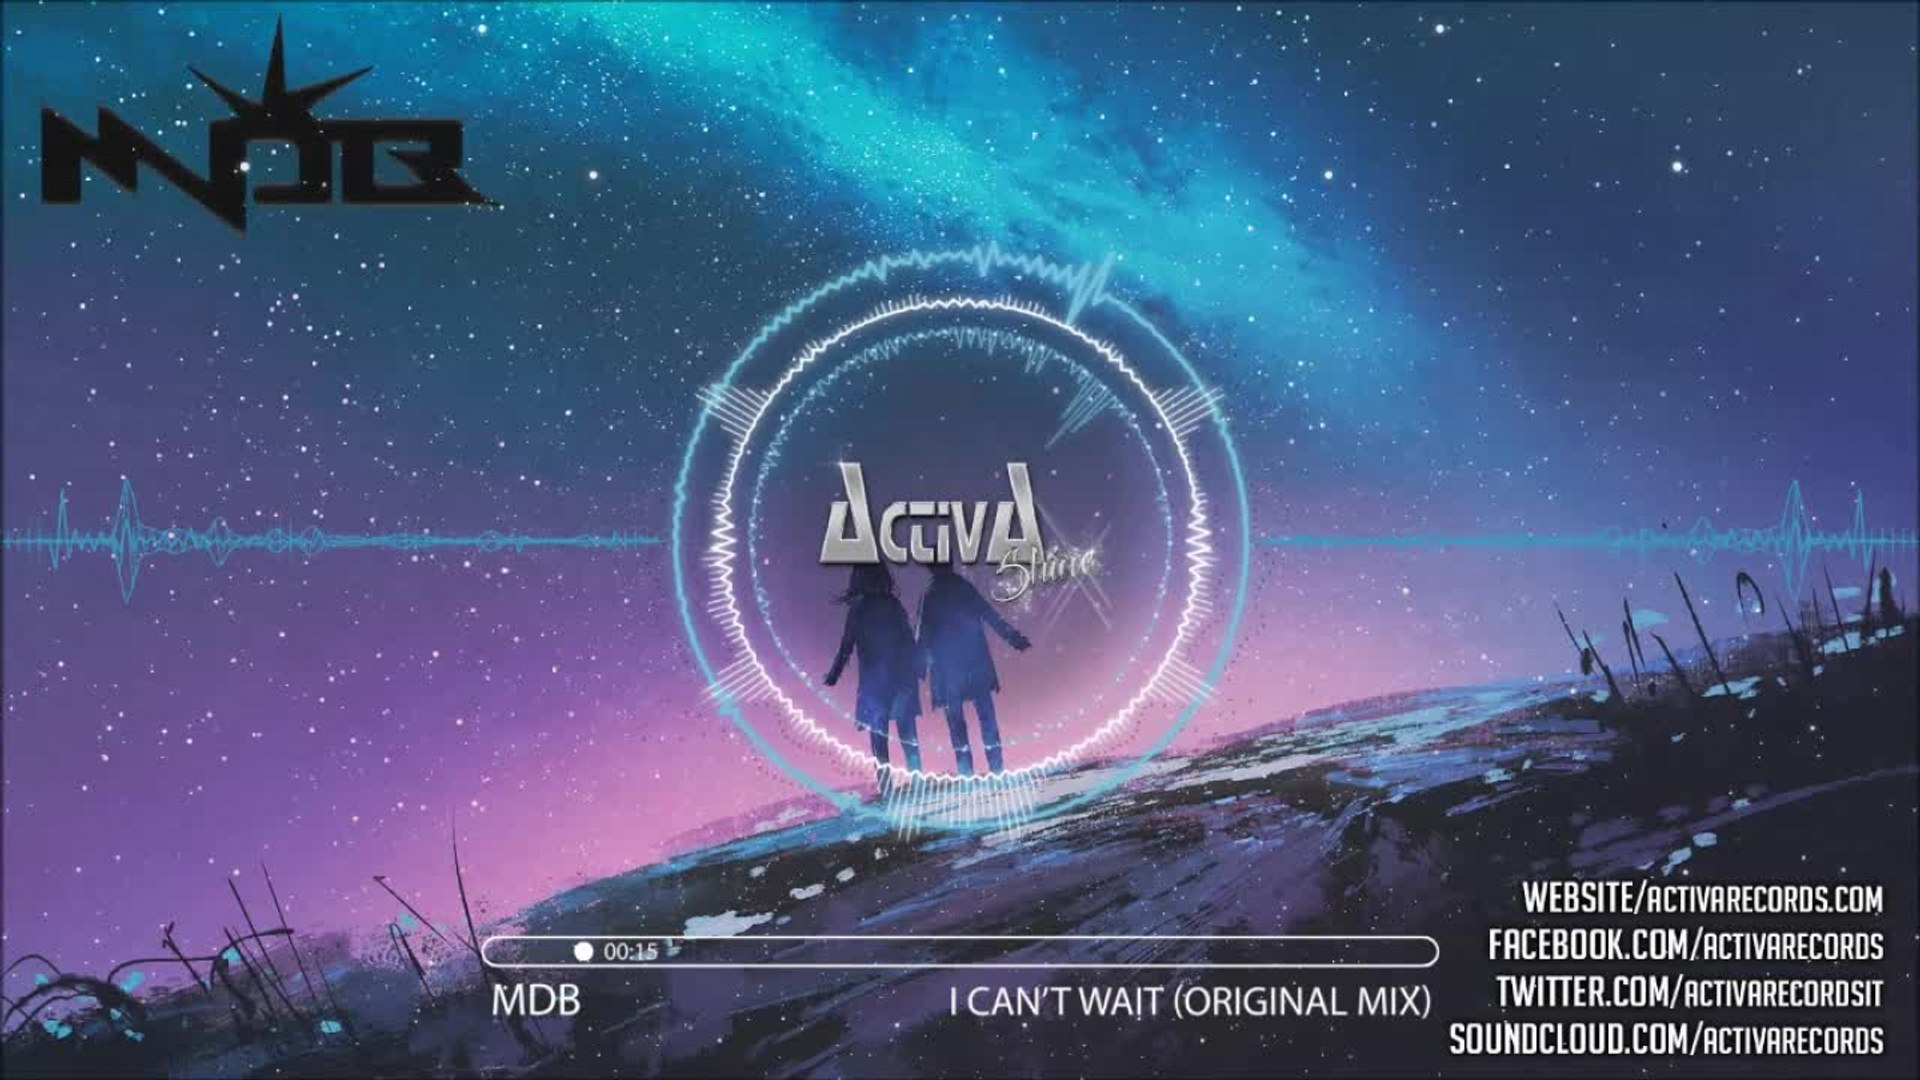 MDB - I Can't Wait (Original Mix) - Official Preview (Official Preview)